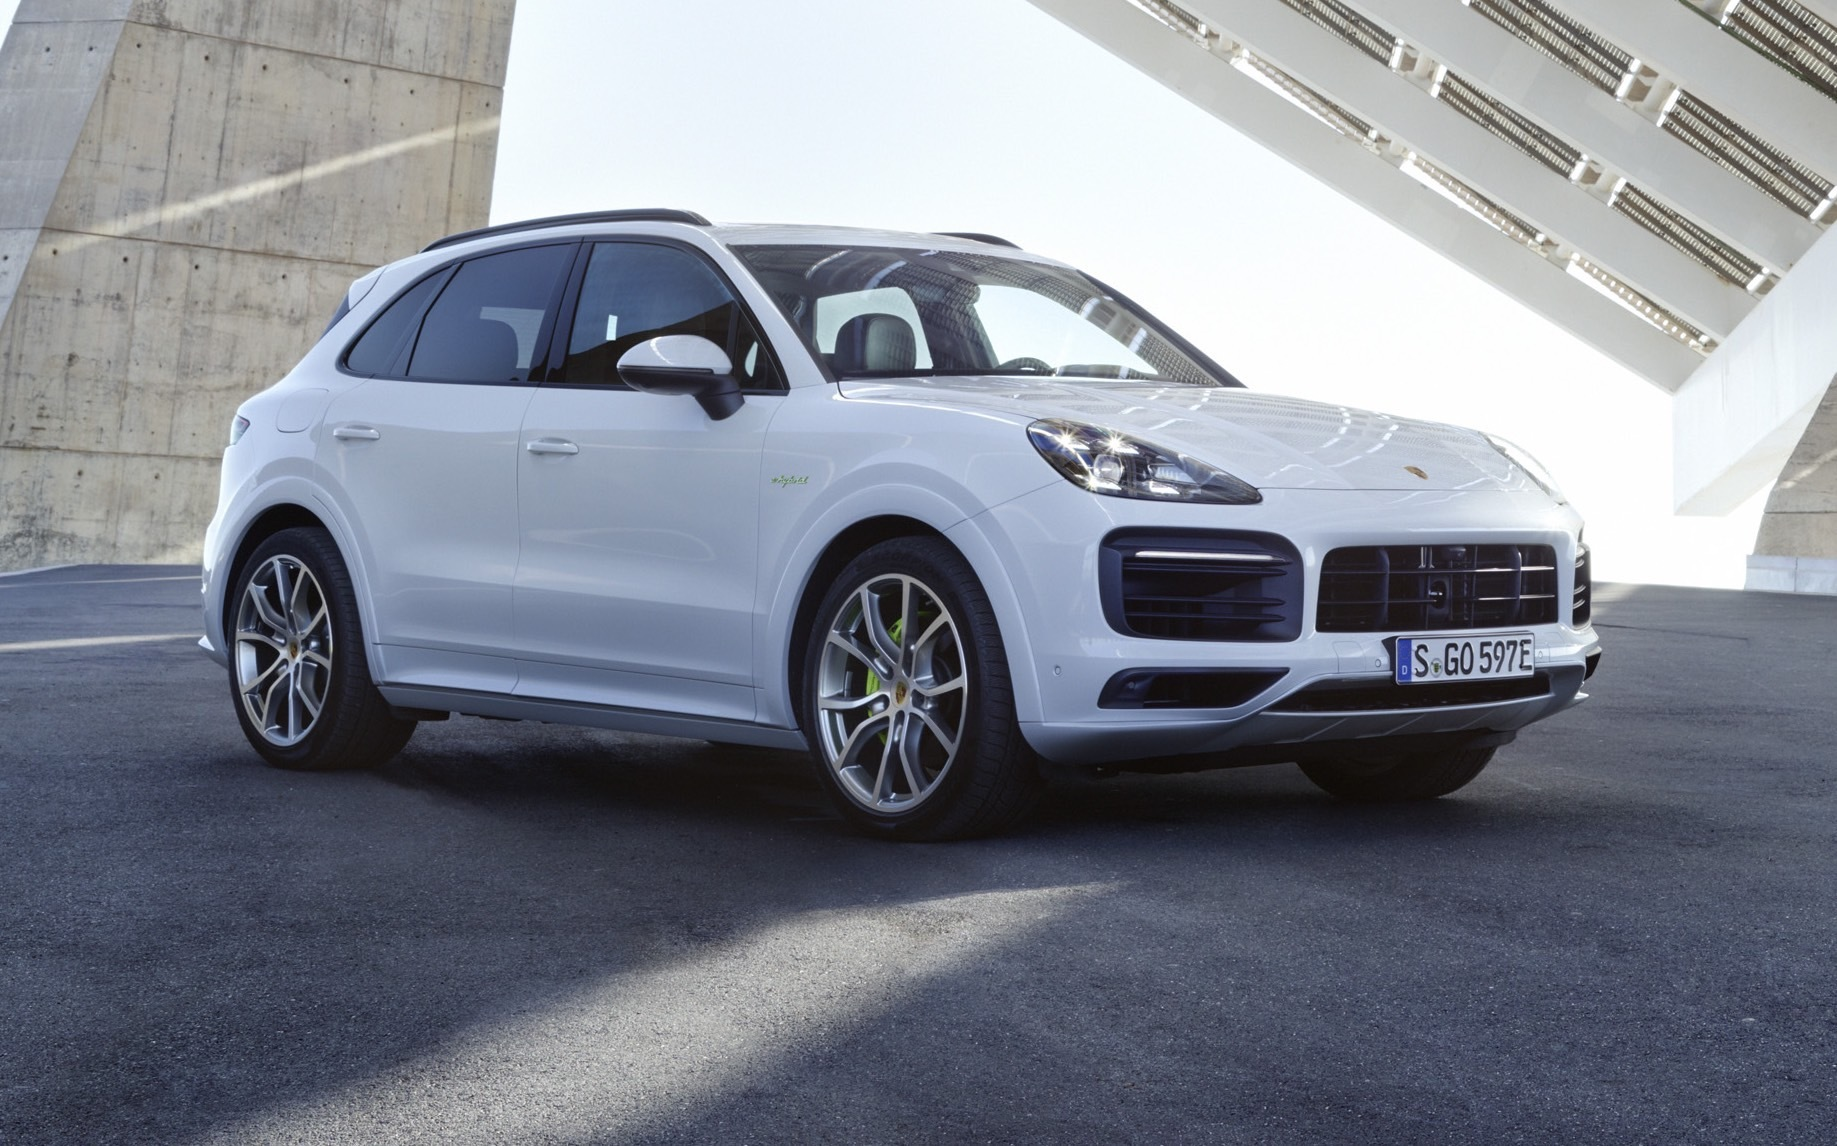 Porsche Cayenne E-Hybrid : la version rechargeable est disponible